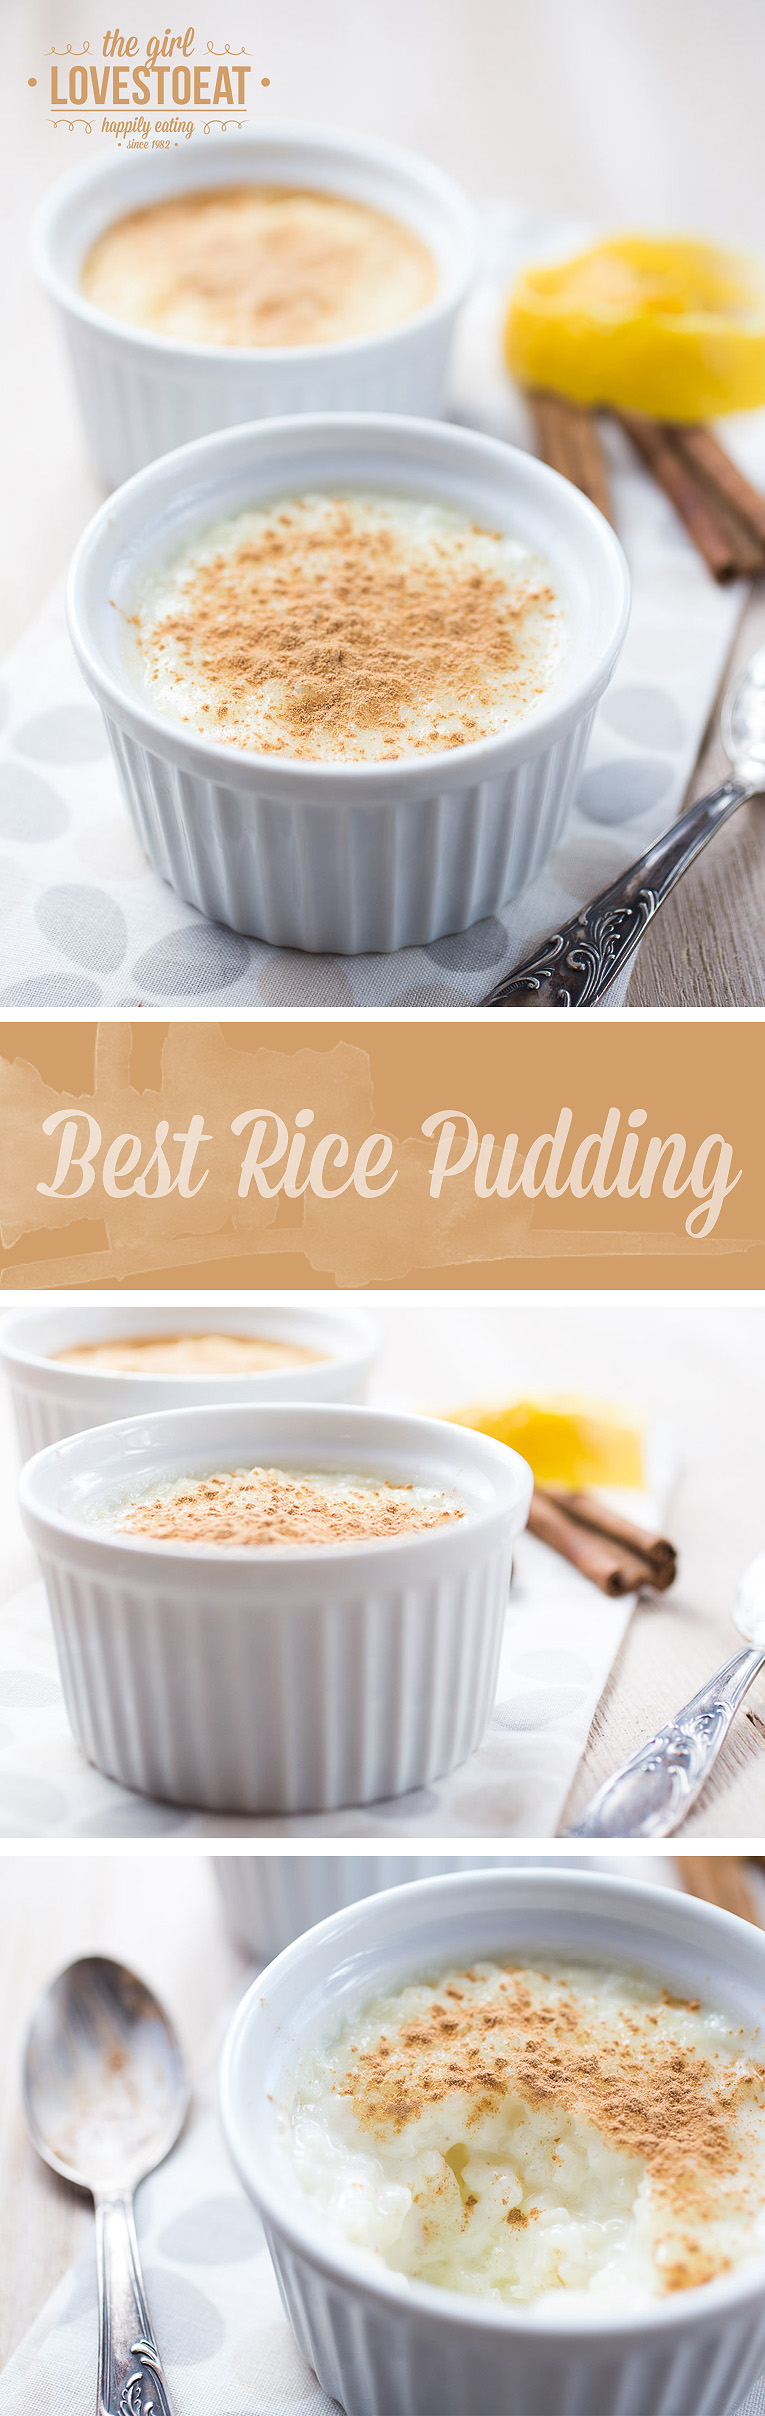 Best Rice Pudding Ever!